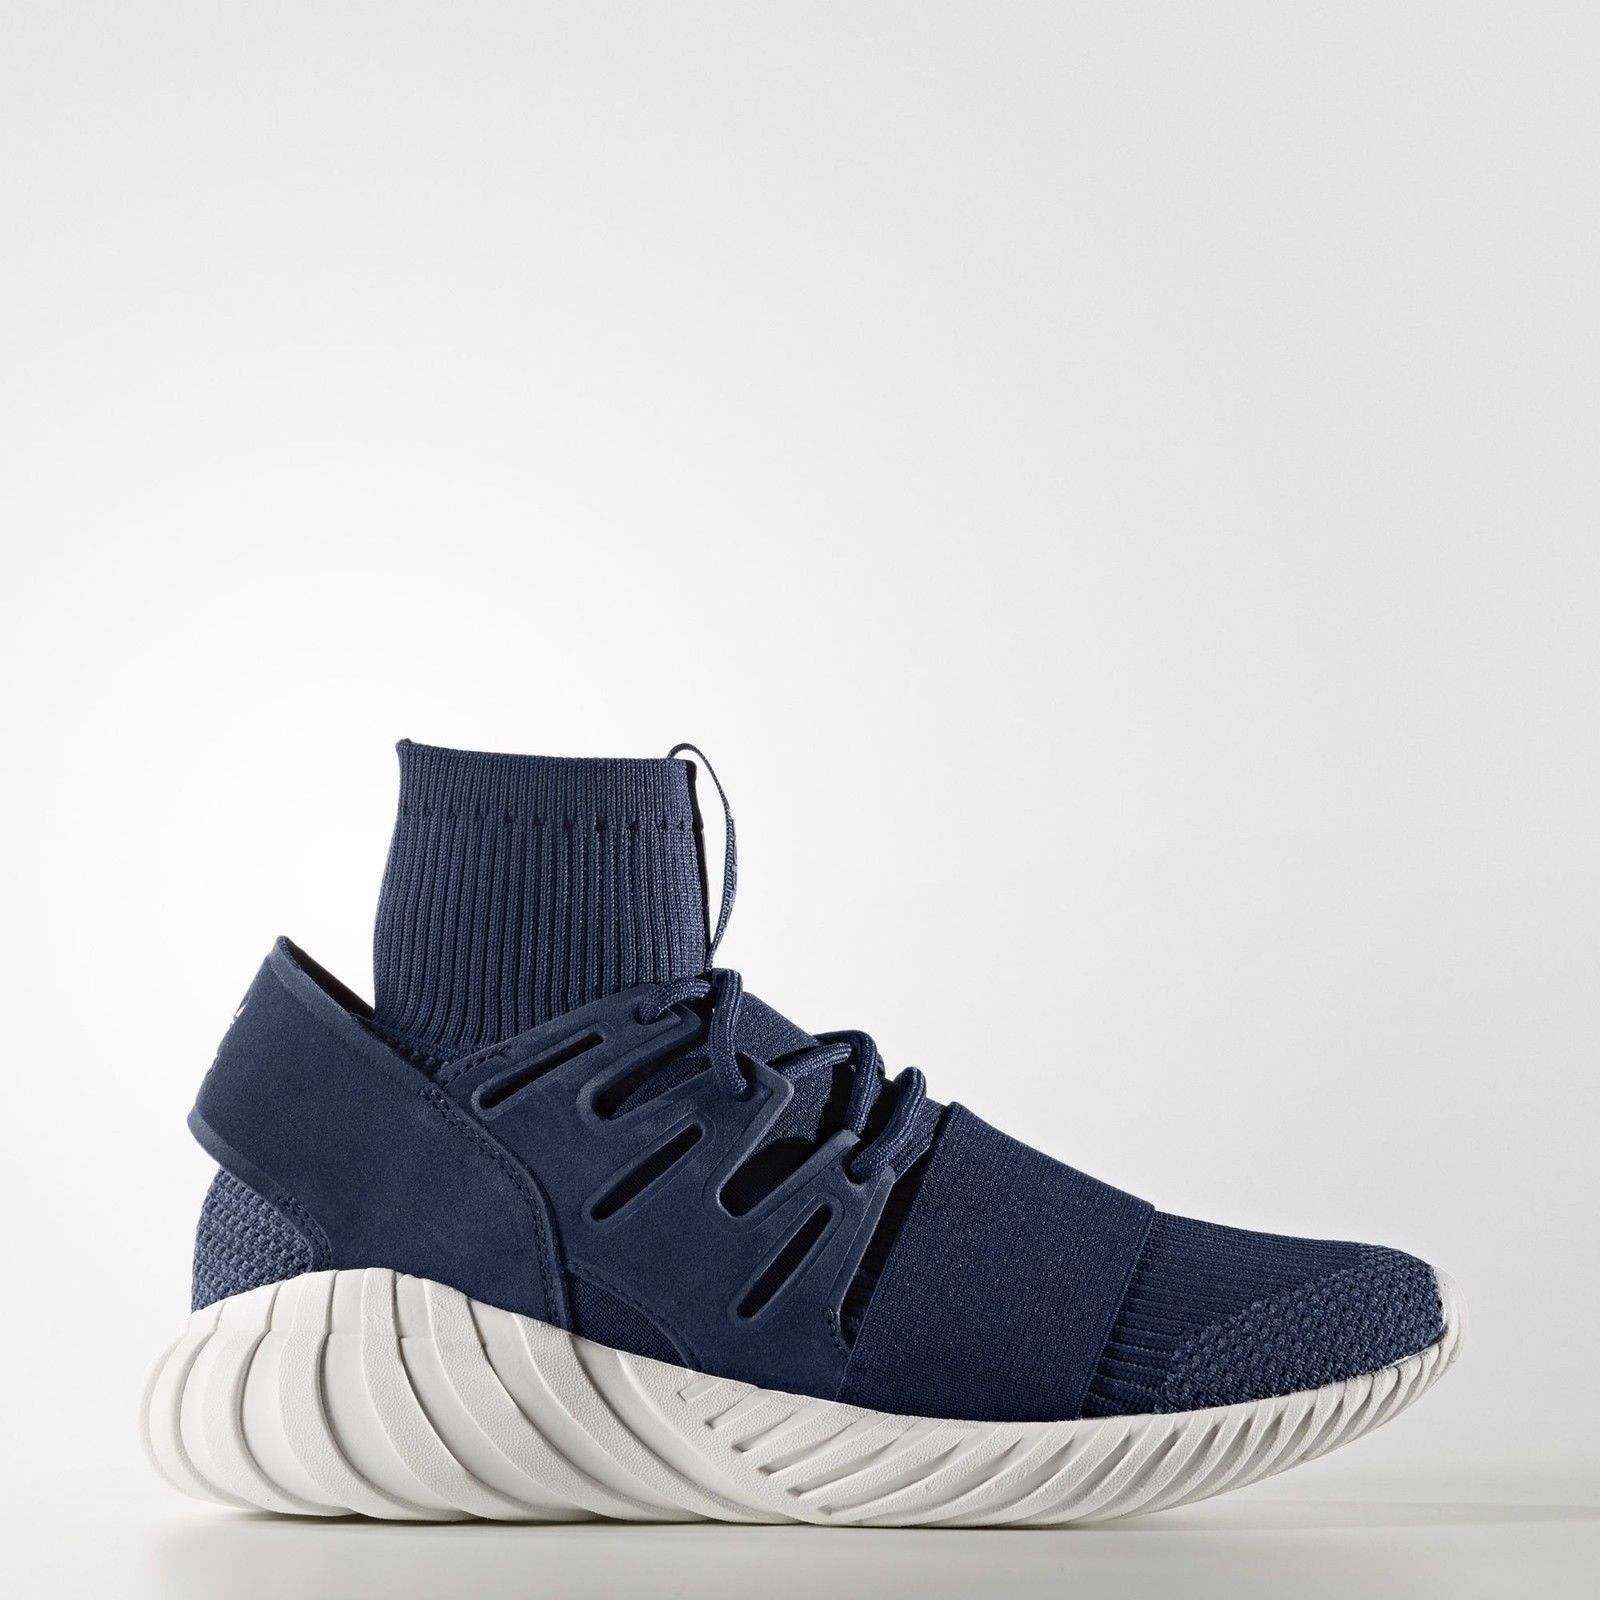 Adidas Originals Tubular Doom PK Primeknit Night Marine Navy Men S80103 10